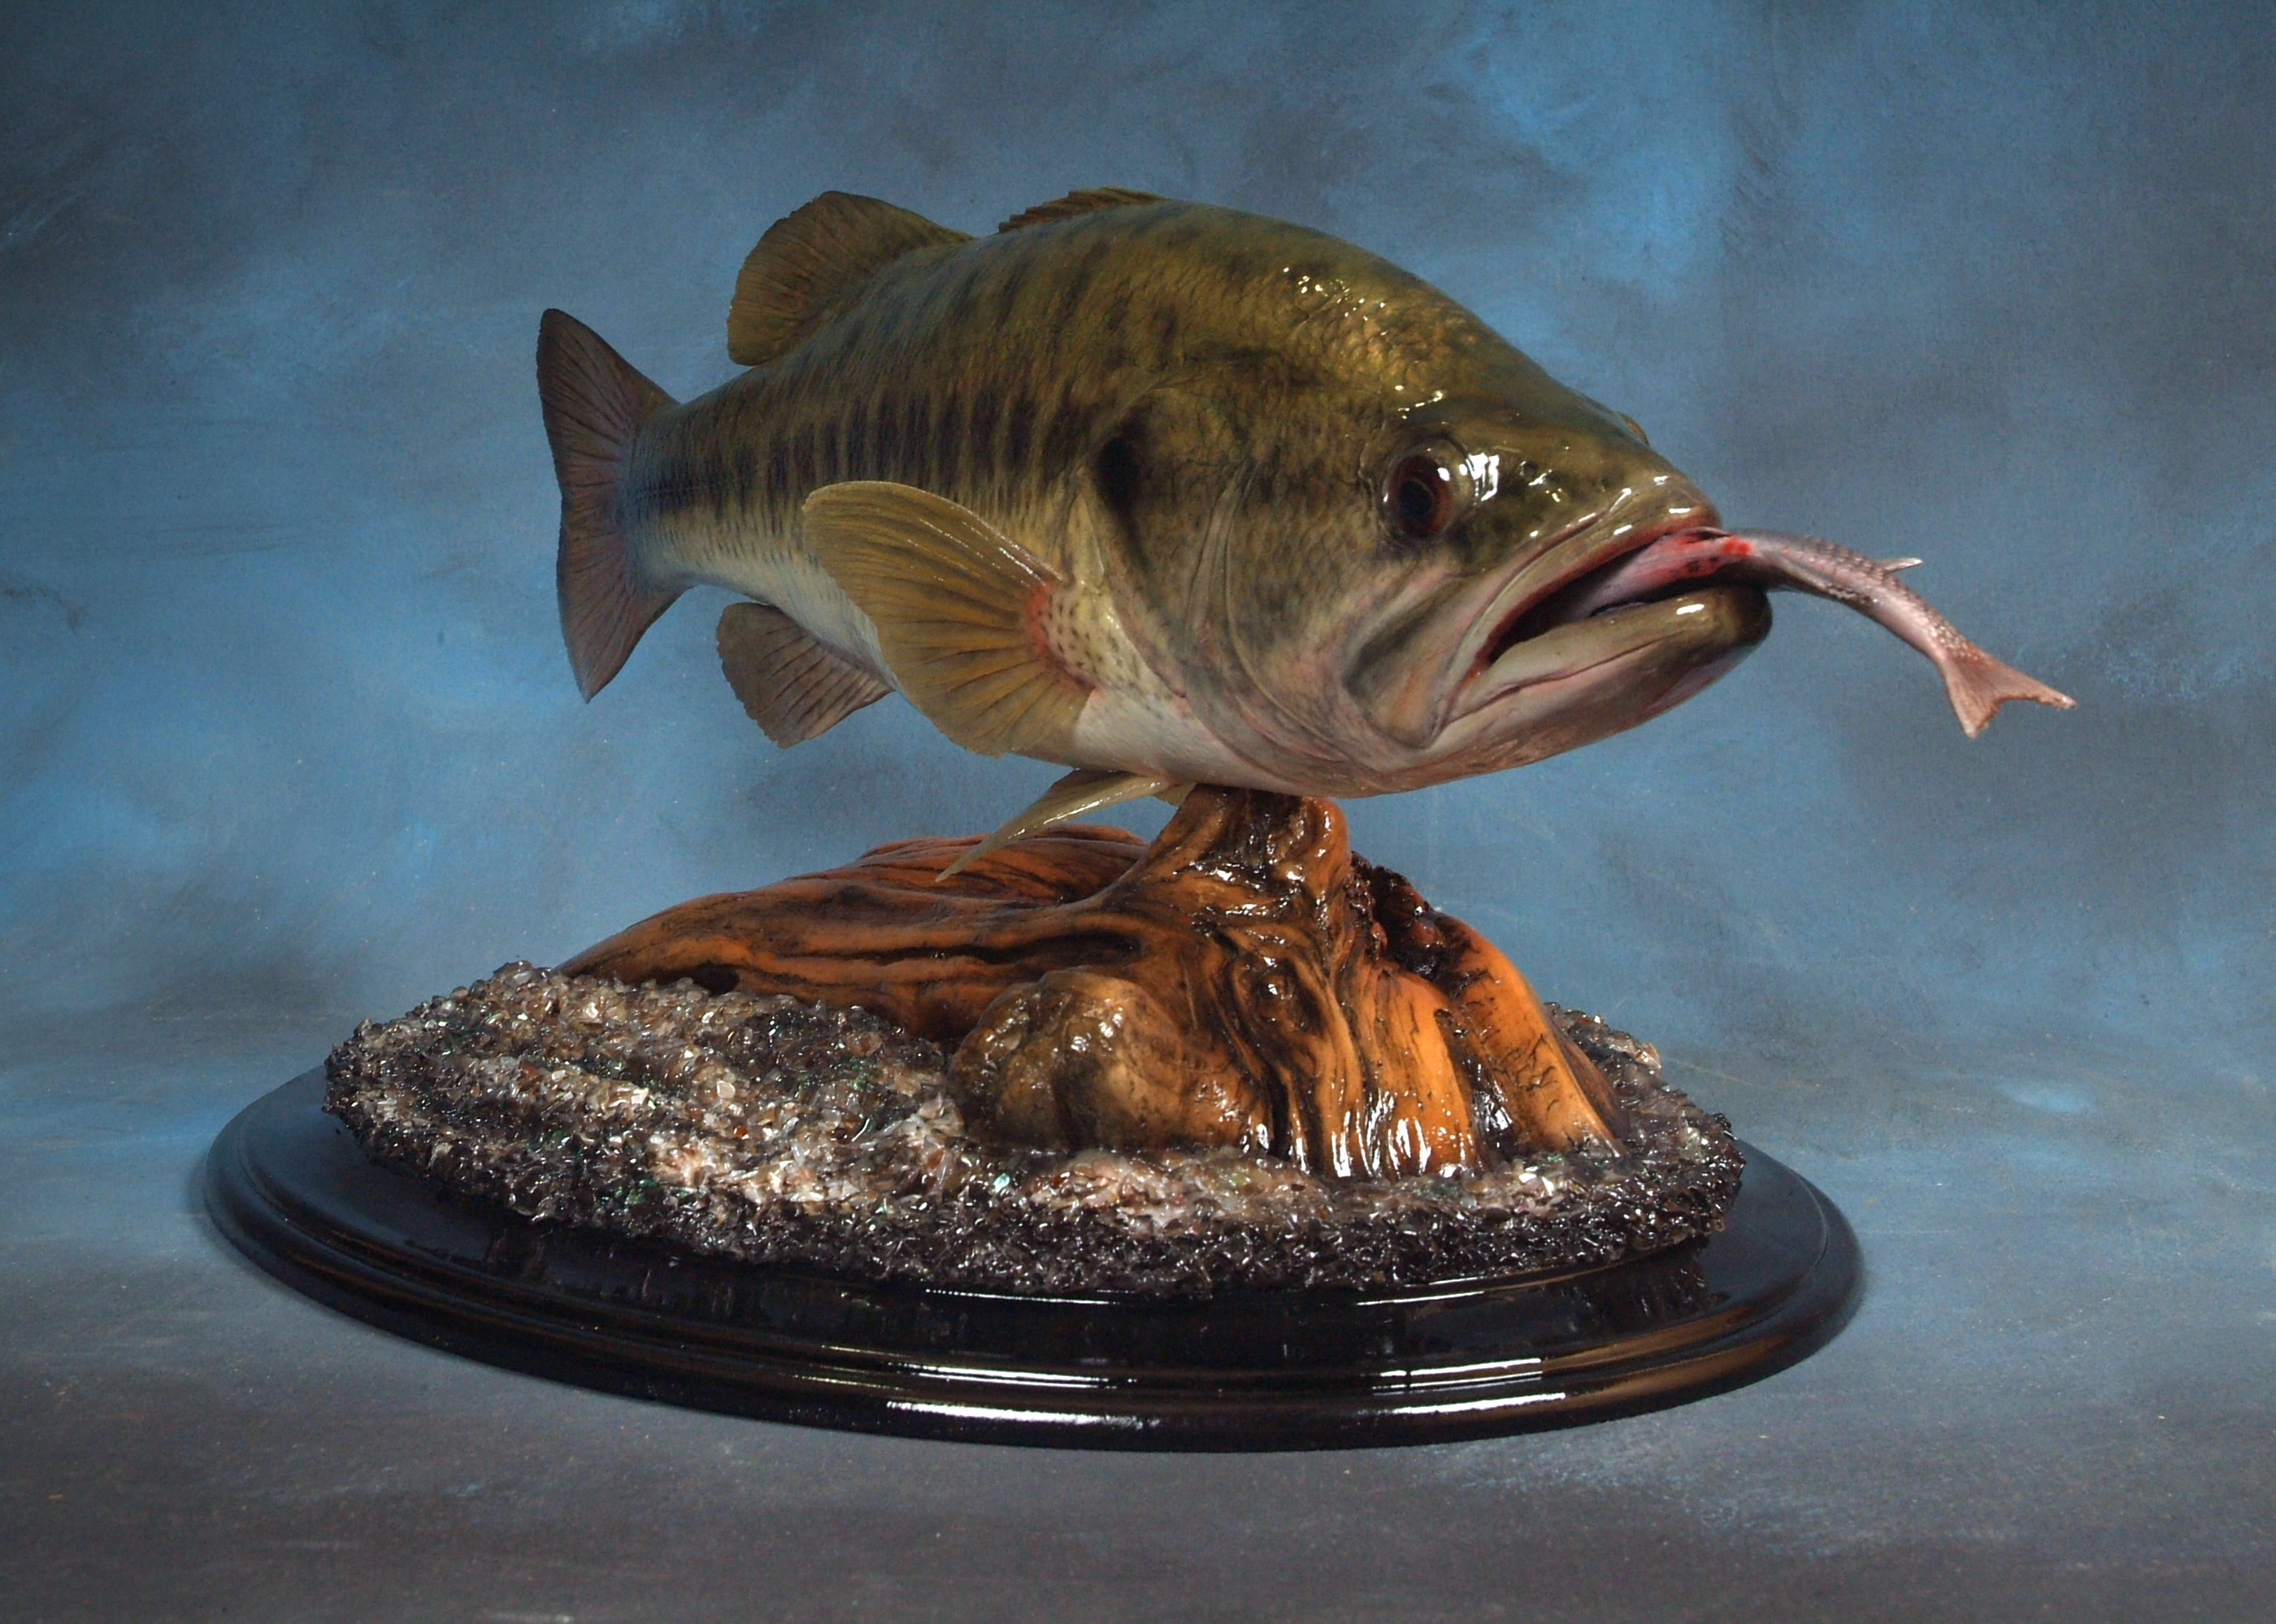 RB LargeMouth Bass OM 16.25 x 11 LB 2.5 (NTA 1st Place)